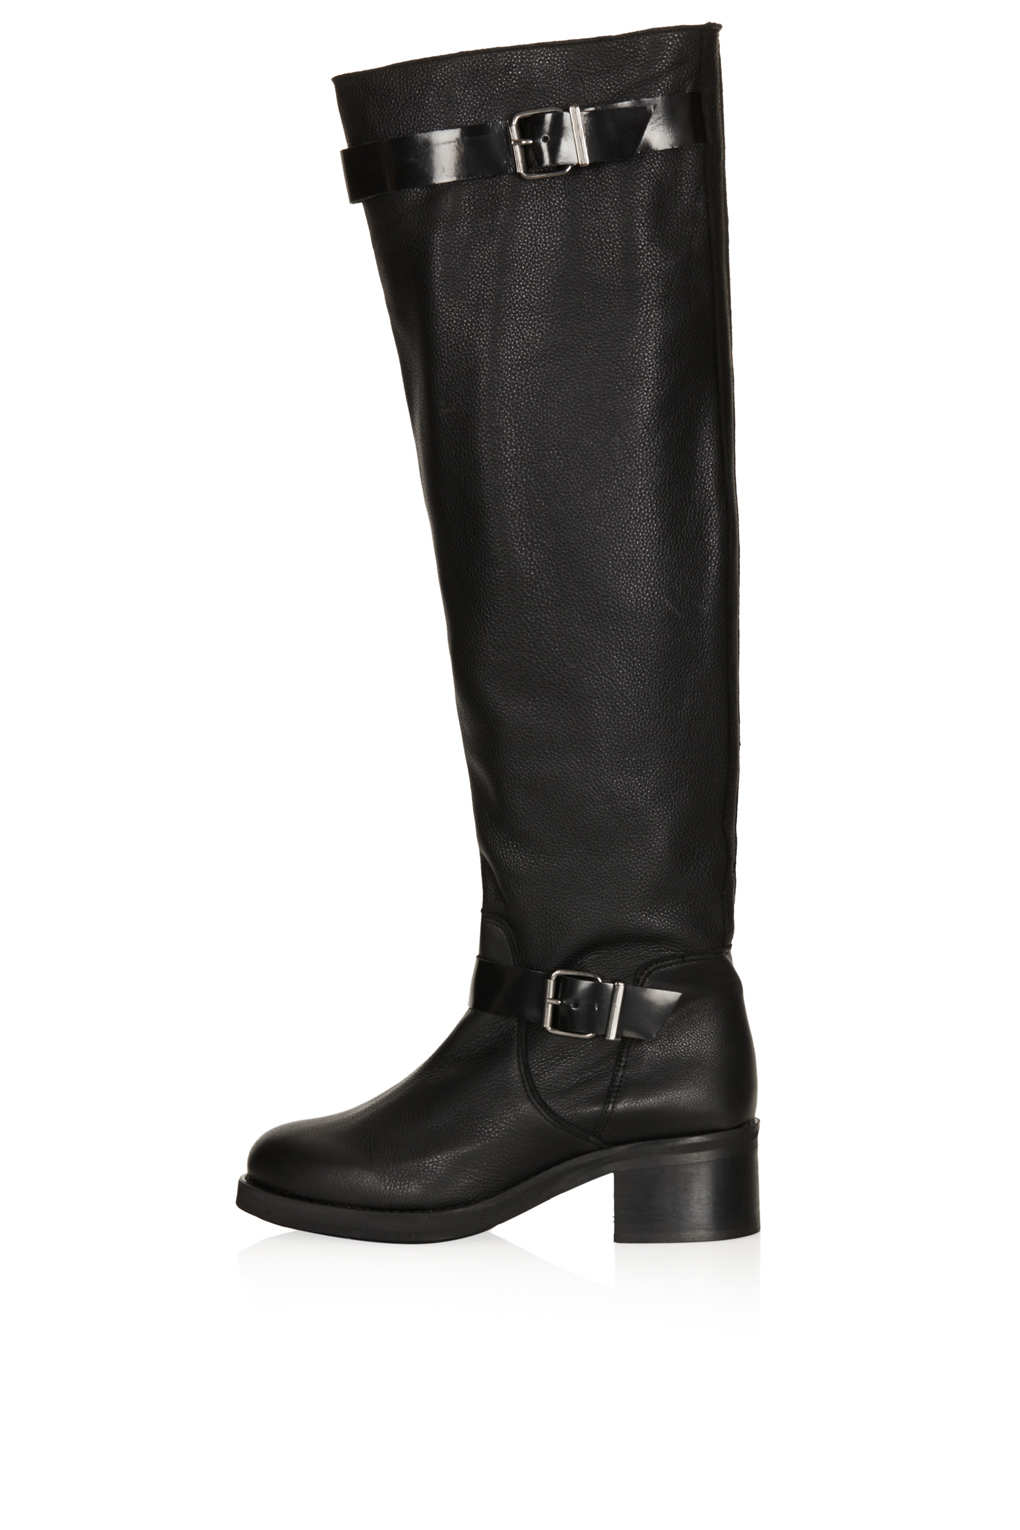 topshop dodger high leg strappy boots in black lyst